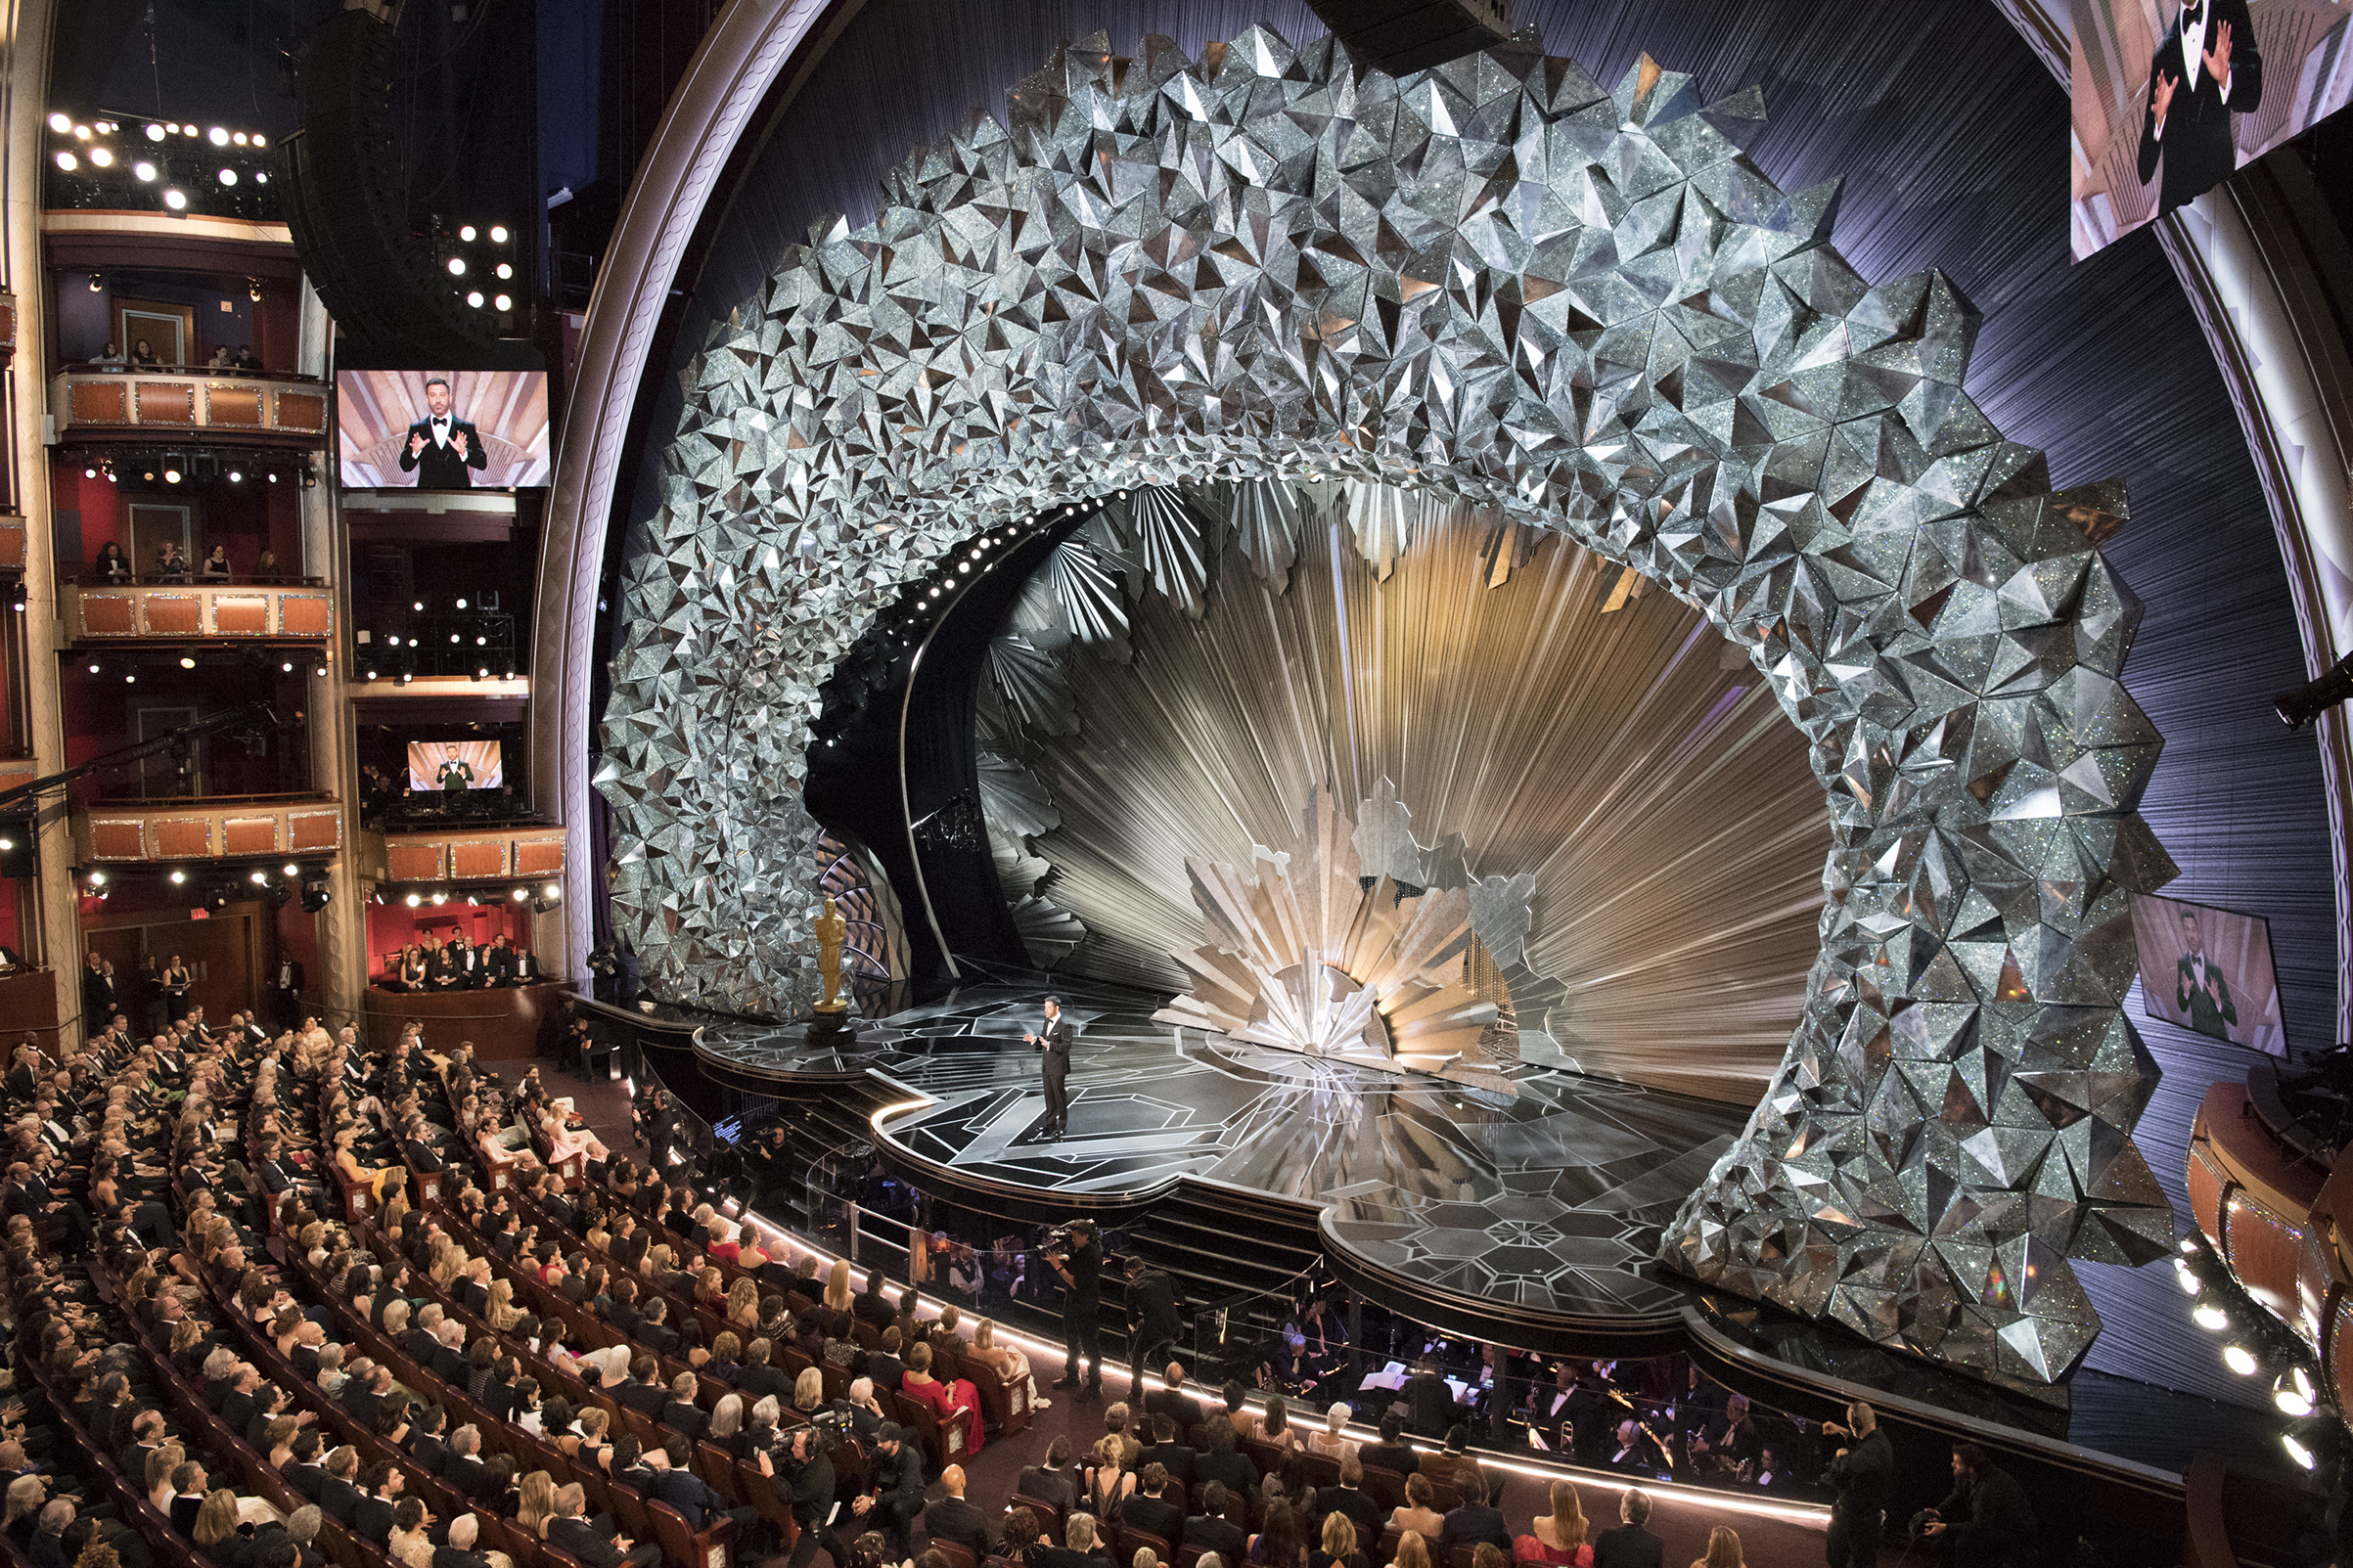 The 90th Oscars broadcasts live at the Dolby Theatre at Hollywood & Highland Center on March 4, 2018.